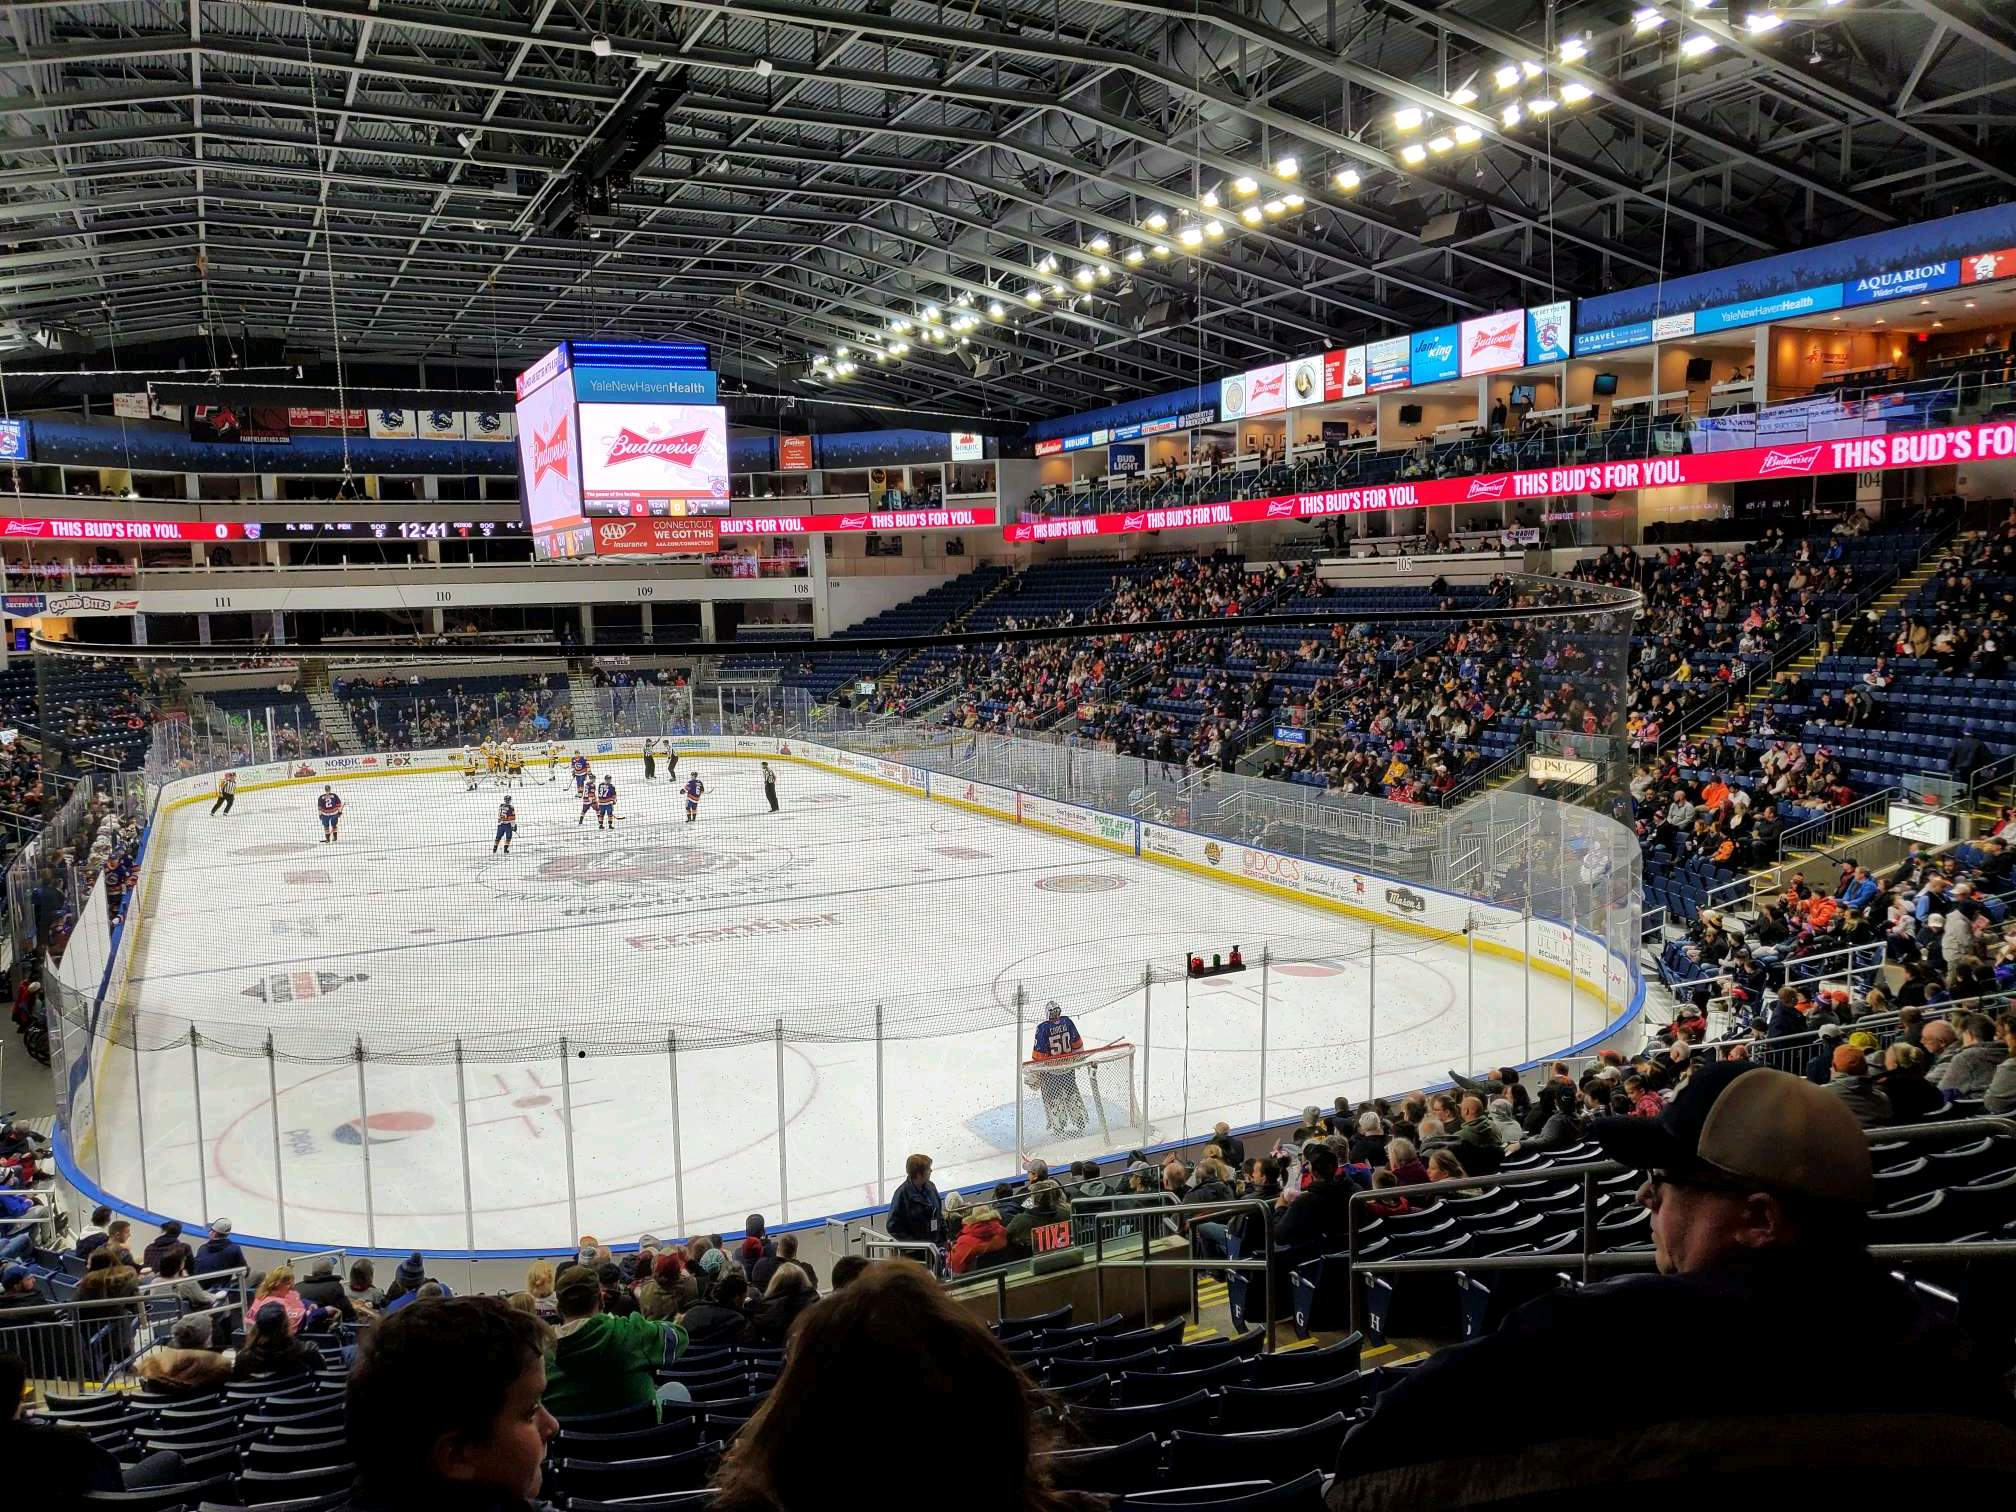 Webster Bank Arena Section 119 Row S Seat 7